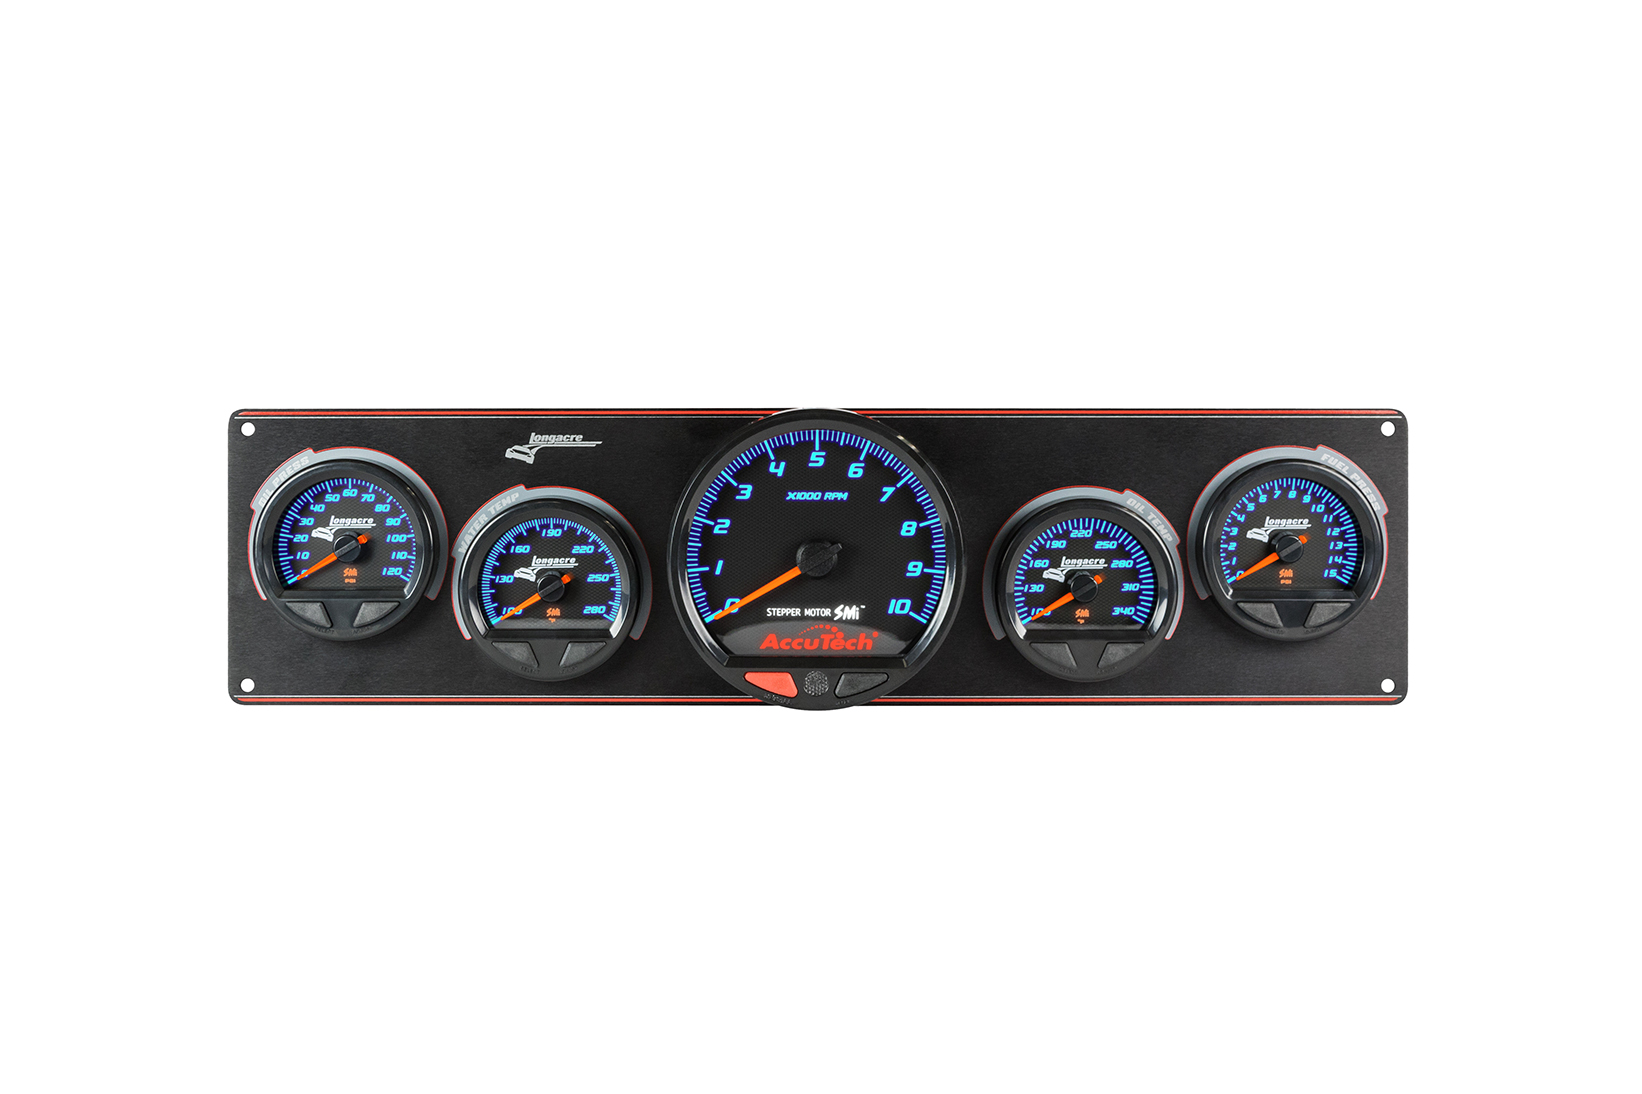 SMi™ Elite Waterproof Gauge Panel, 4 Gauge Oil Pressure/Water Temperature/Oil Temperature/Fuel Pressure